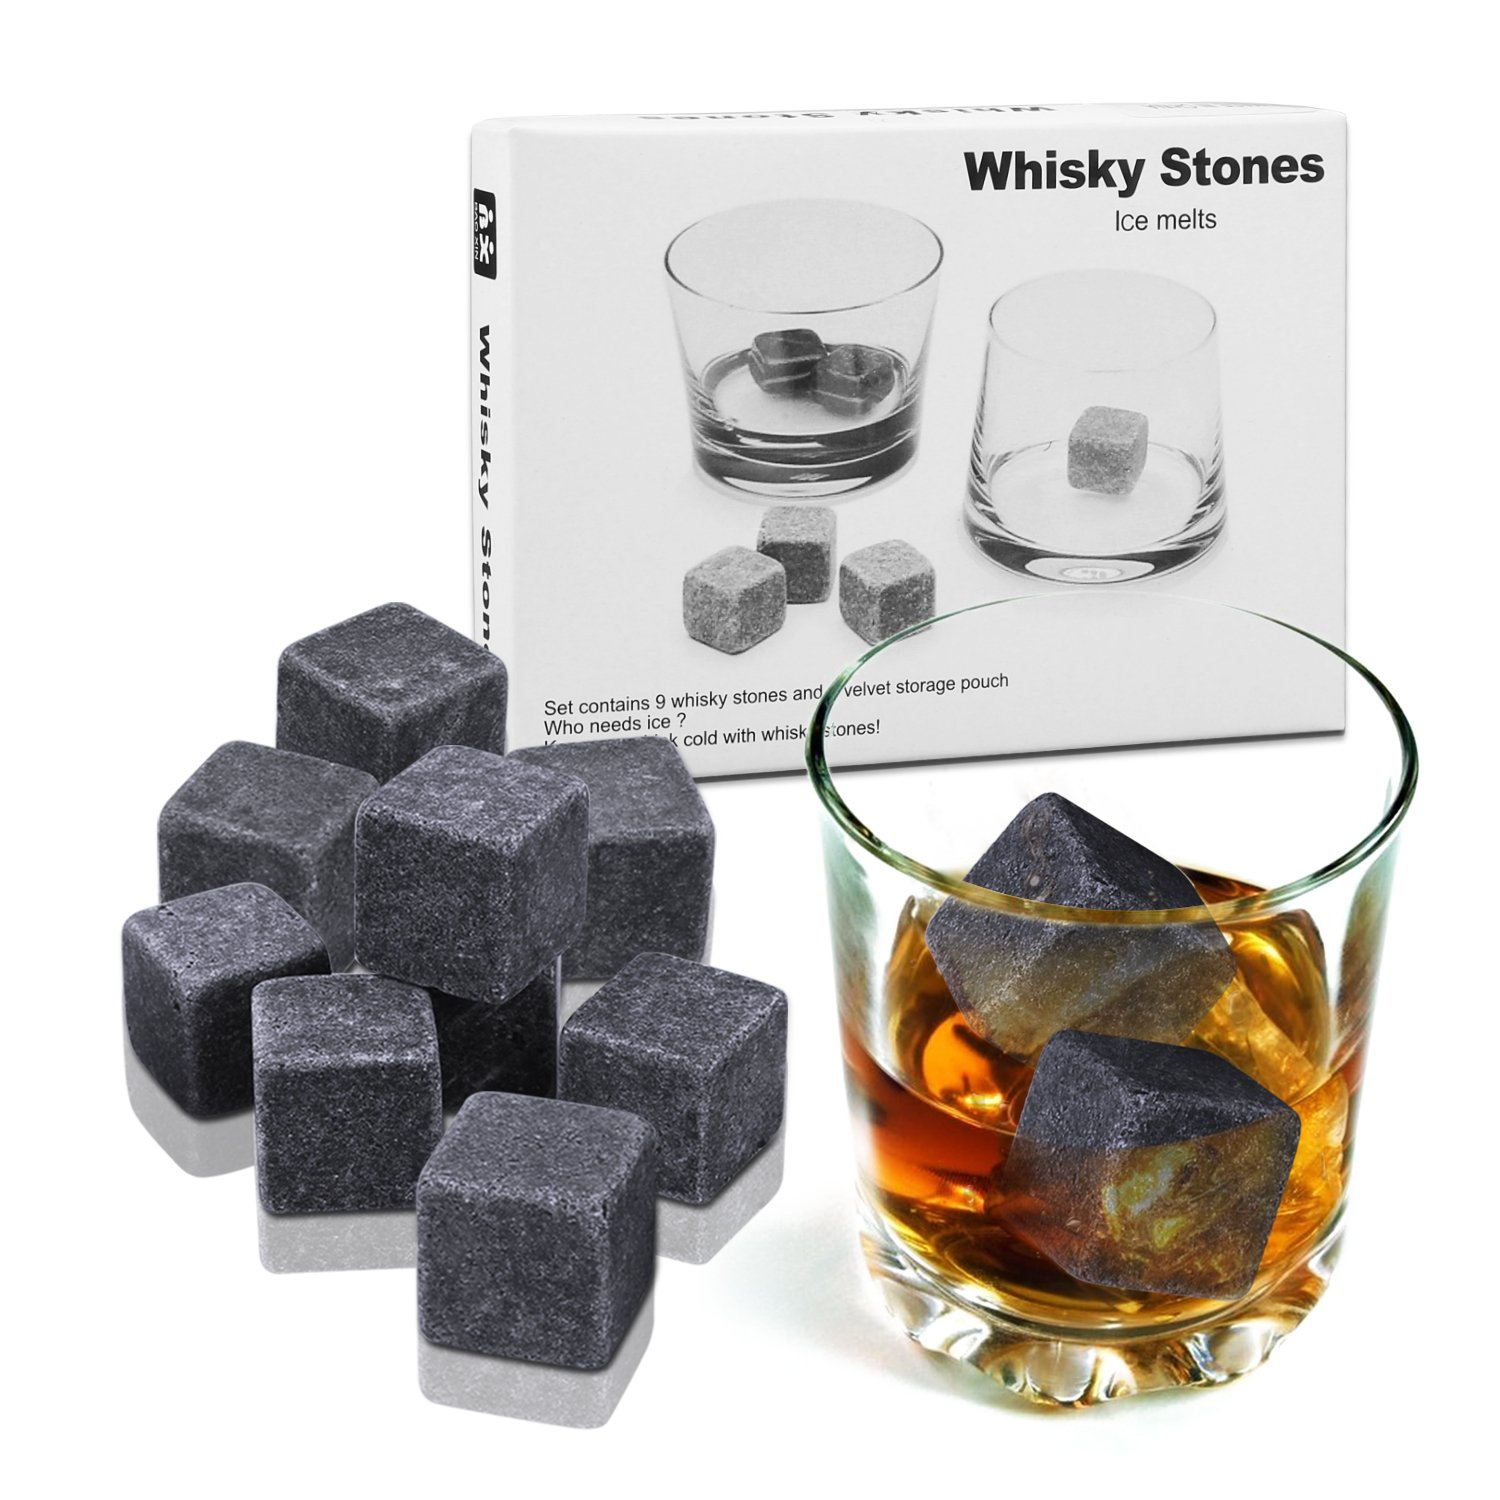 Whisky Stones, Proking 9 Pcs Gift Set Whisky Rocks Chilling Stones Reusable Granite Ice Cubes, Scotch Whisky Drinks Beer Wine Cooler, Best Gift For Whiskey Drinker, Husband, Dad, Men (black)